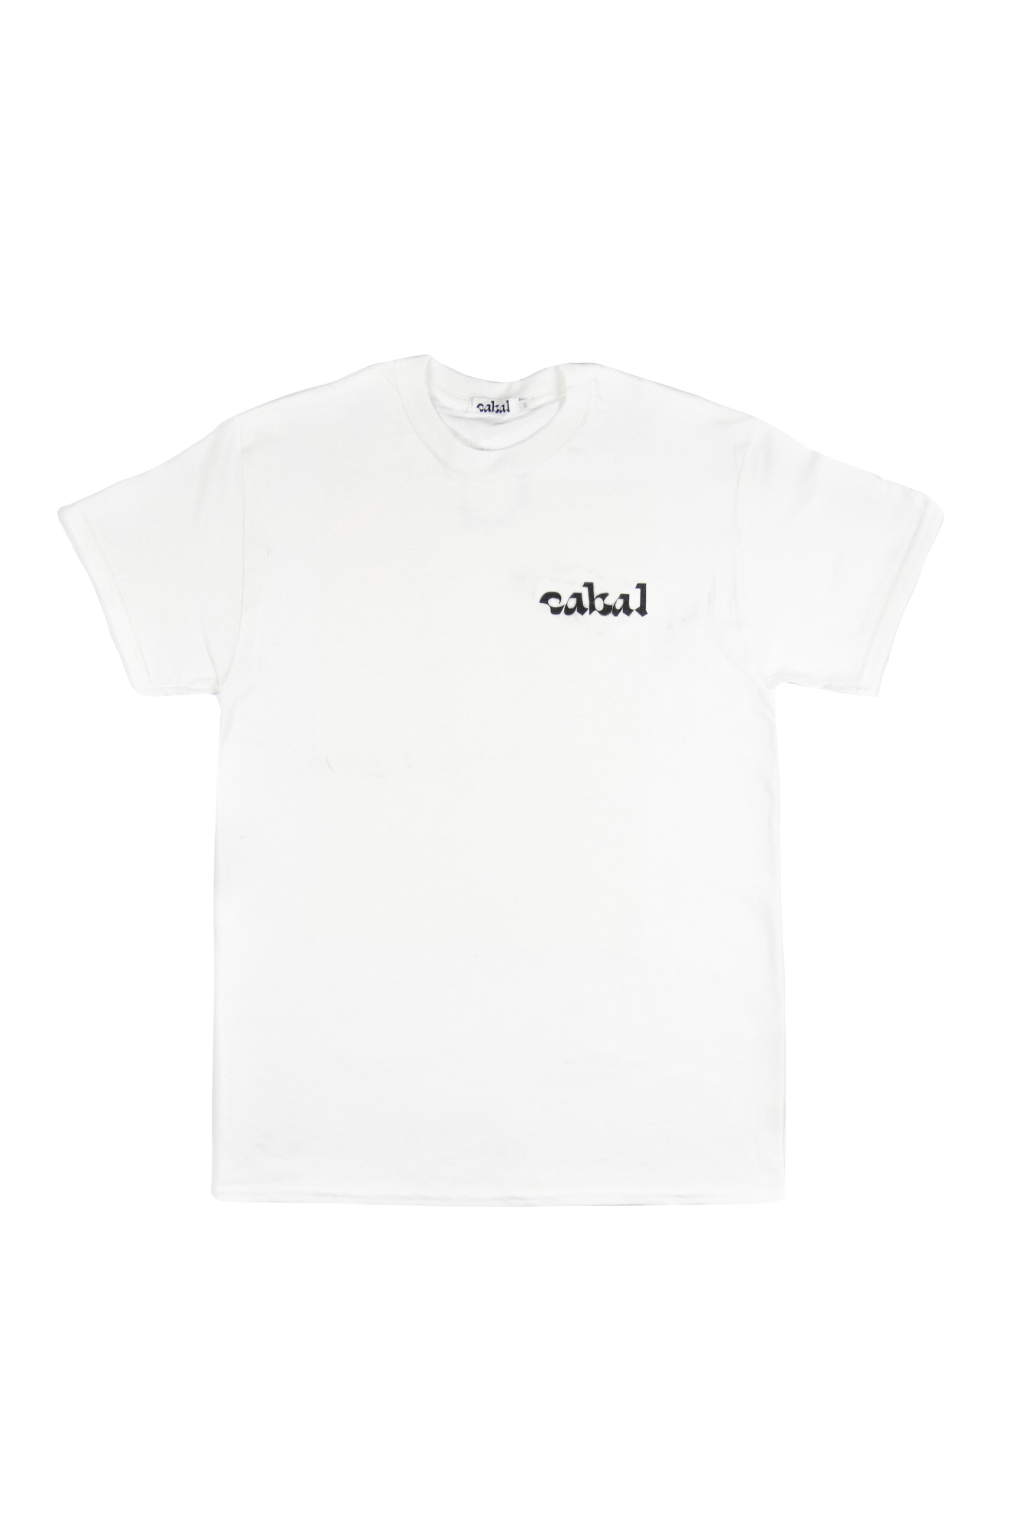 Front Image of Cabal Logo Screenprinted on Breast White Short Sleeve Graphic Tee